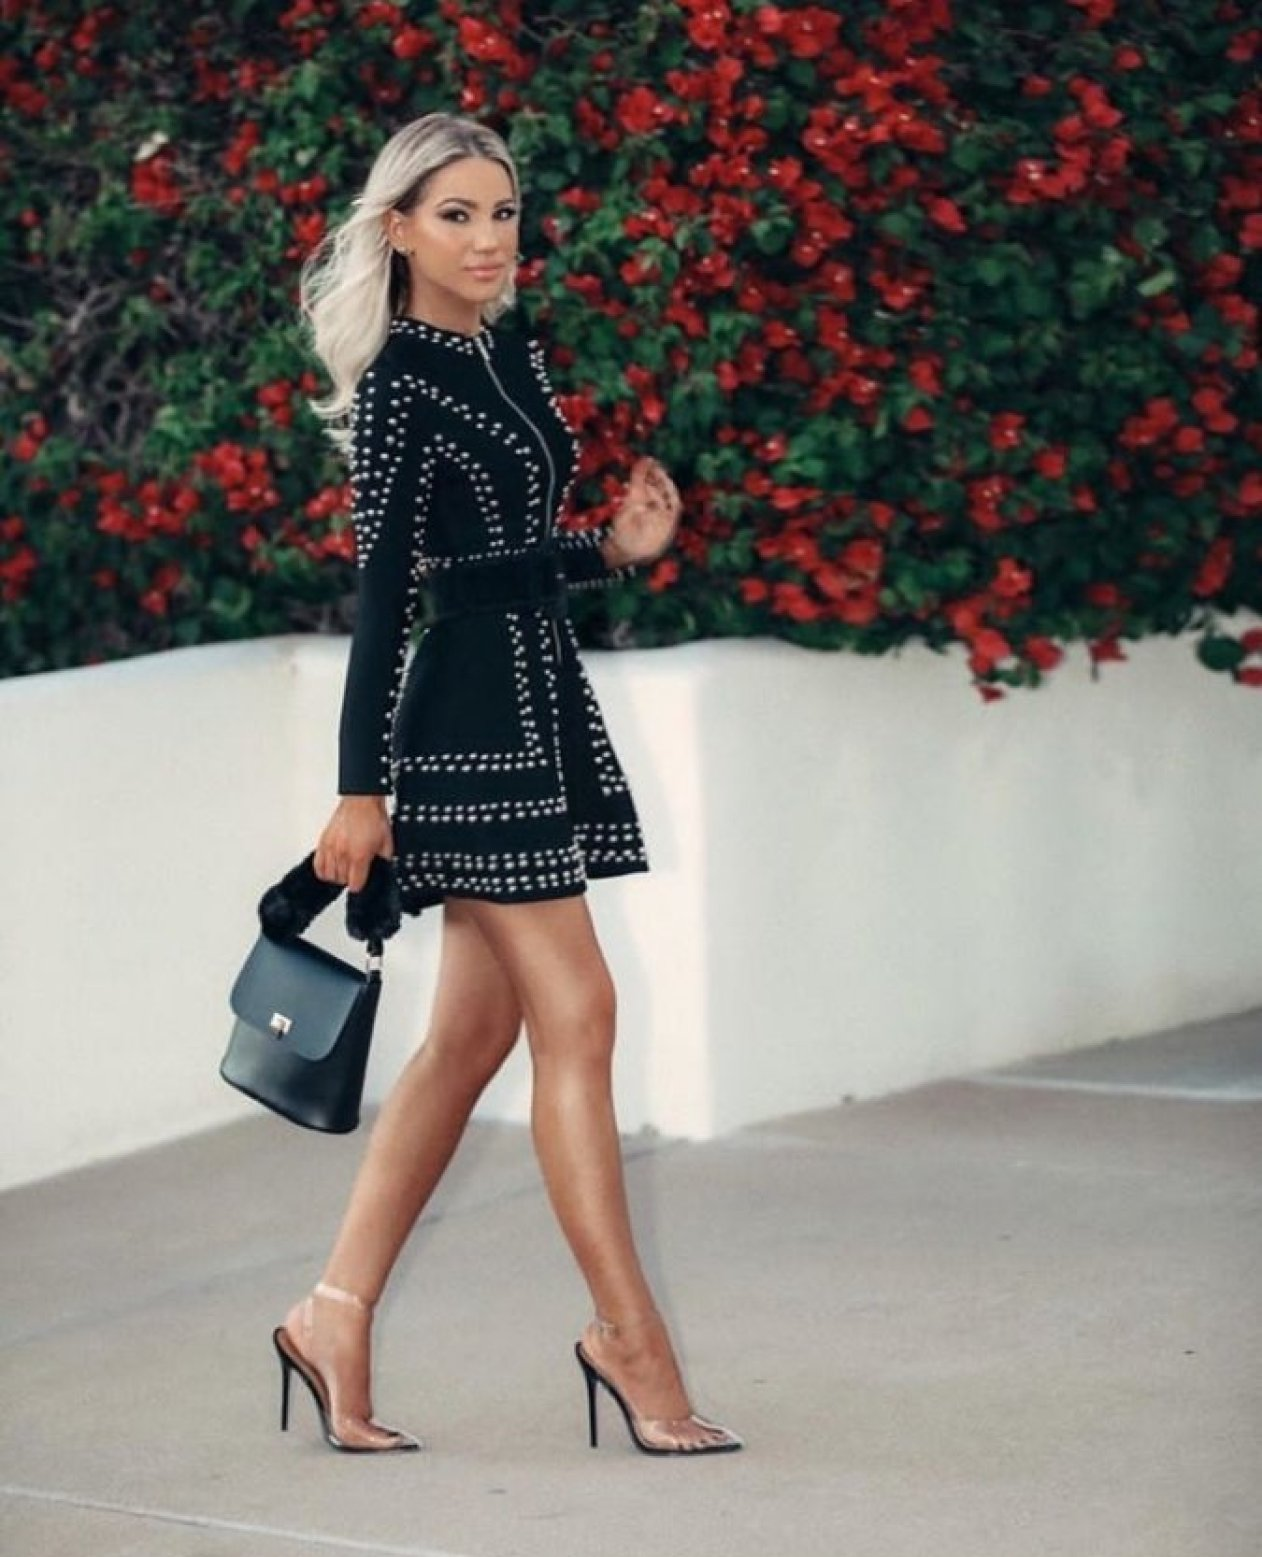 How to Slay Your Looks in Black like Shanda Rogers